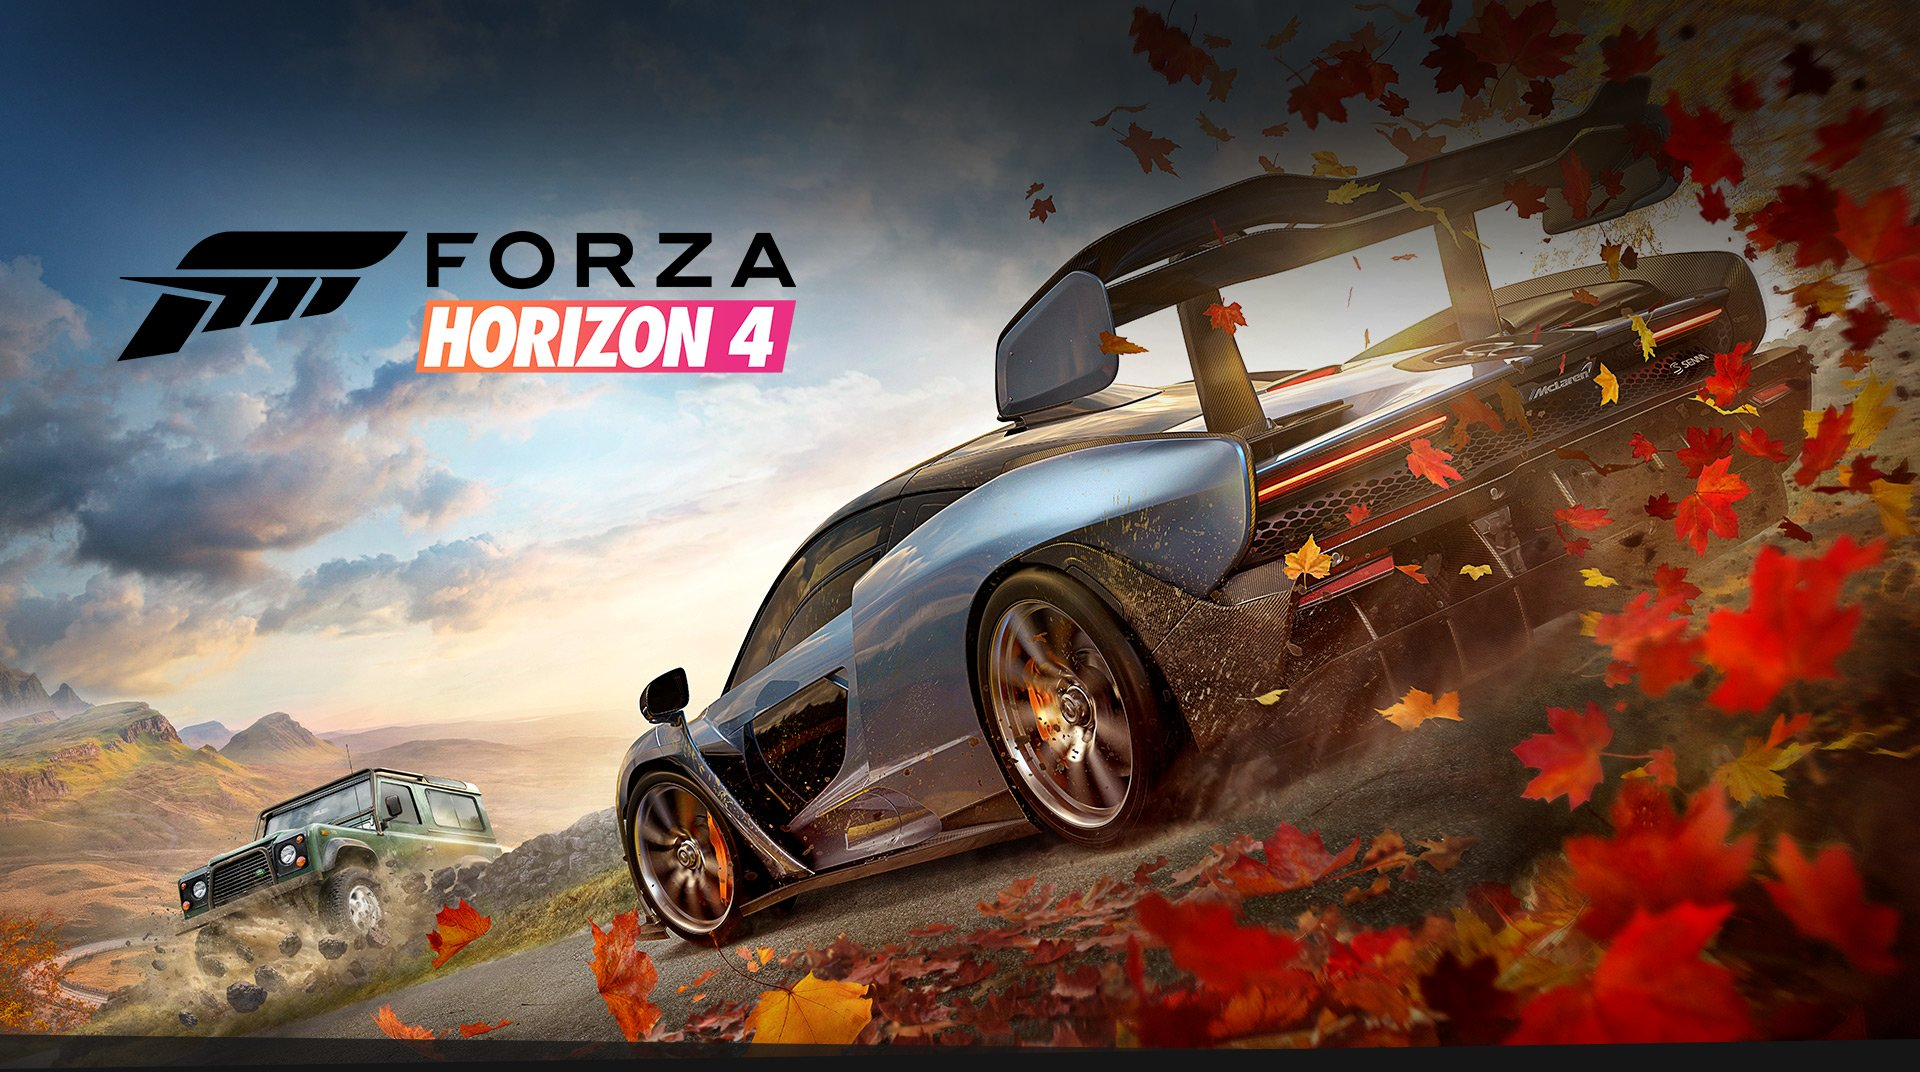 Forza Horizon 4 PS4 Version Full Game Free Download